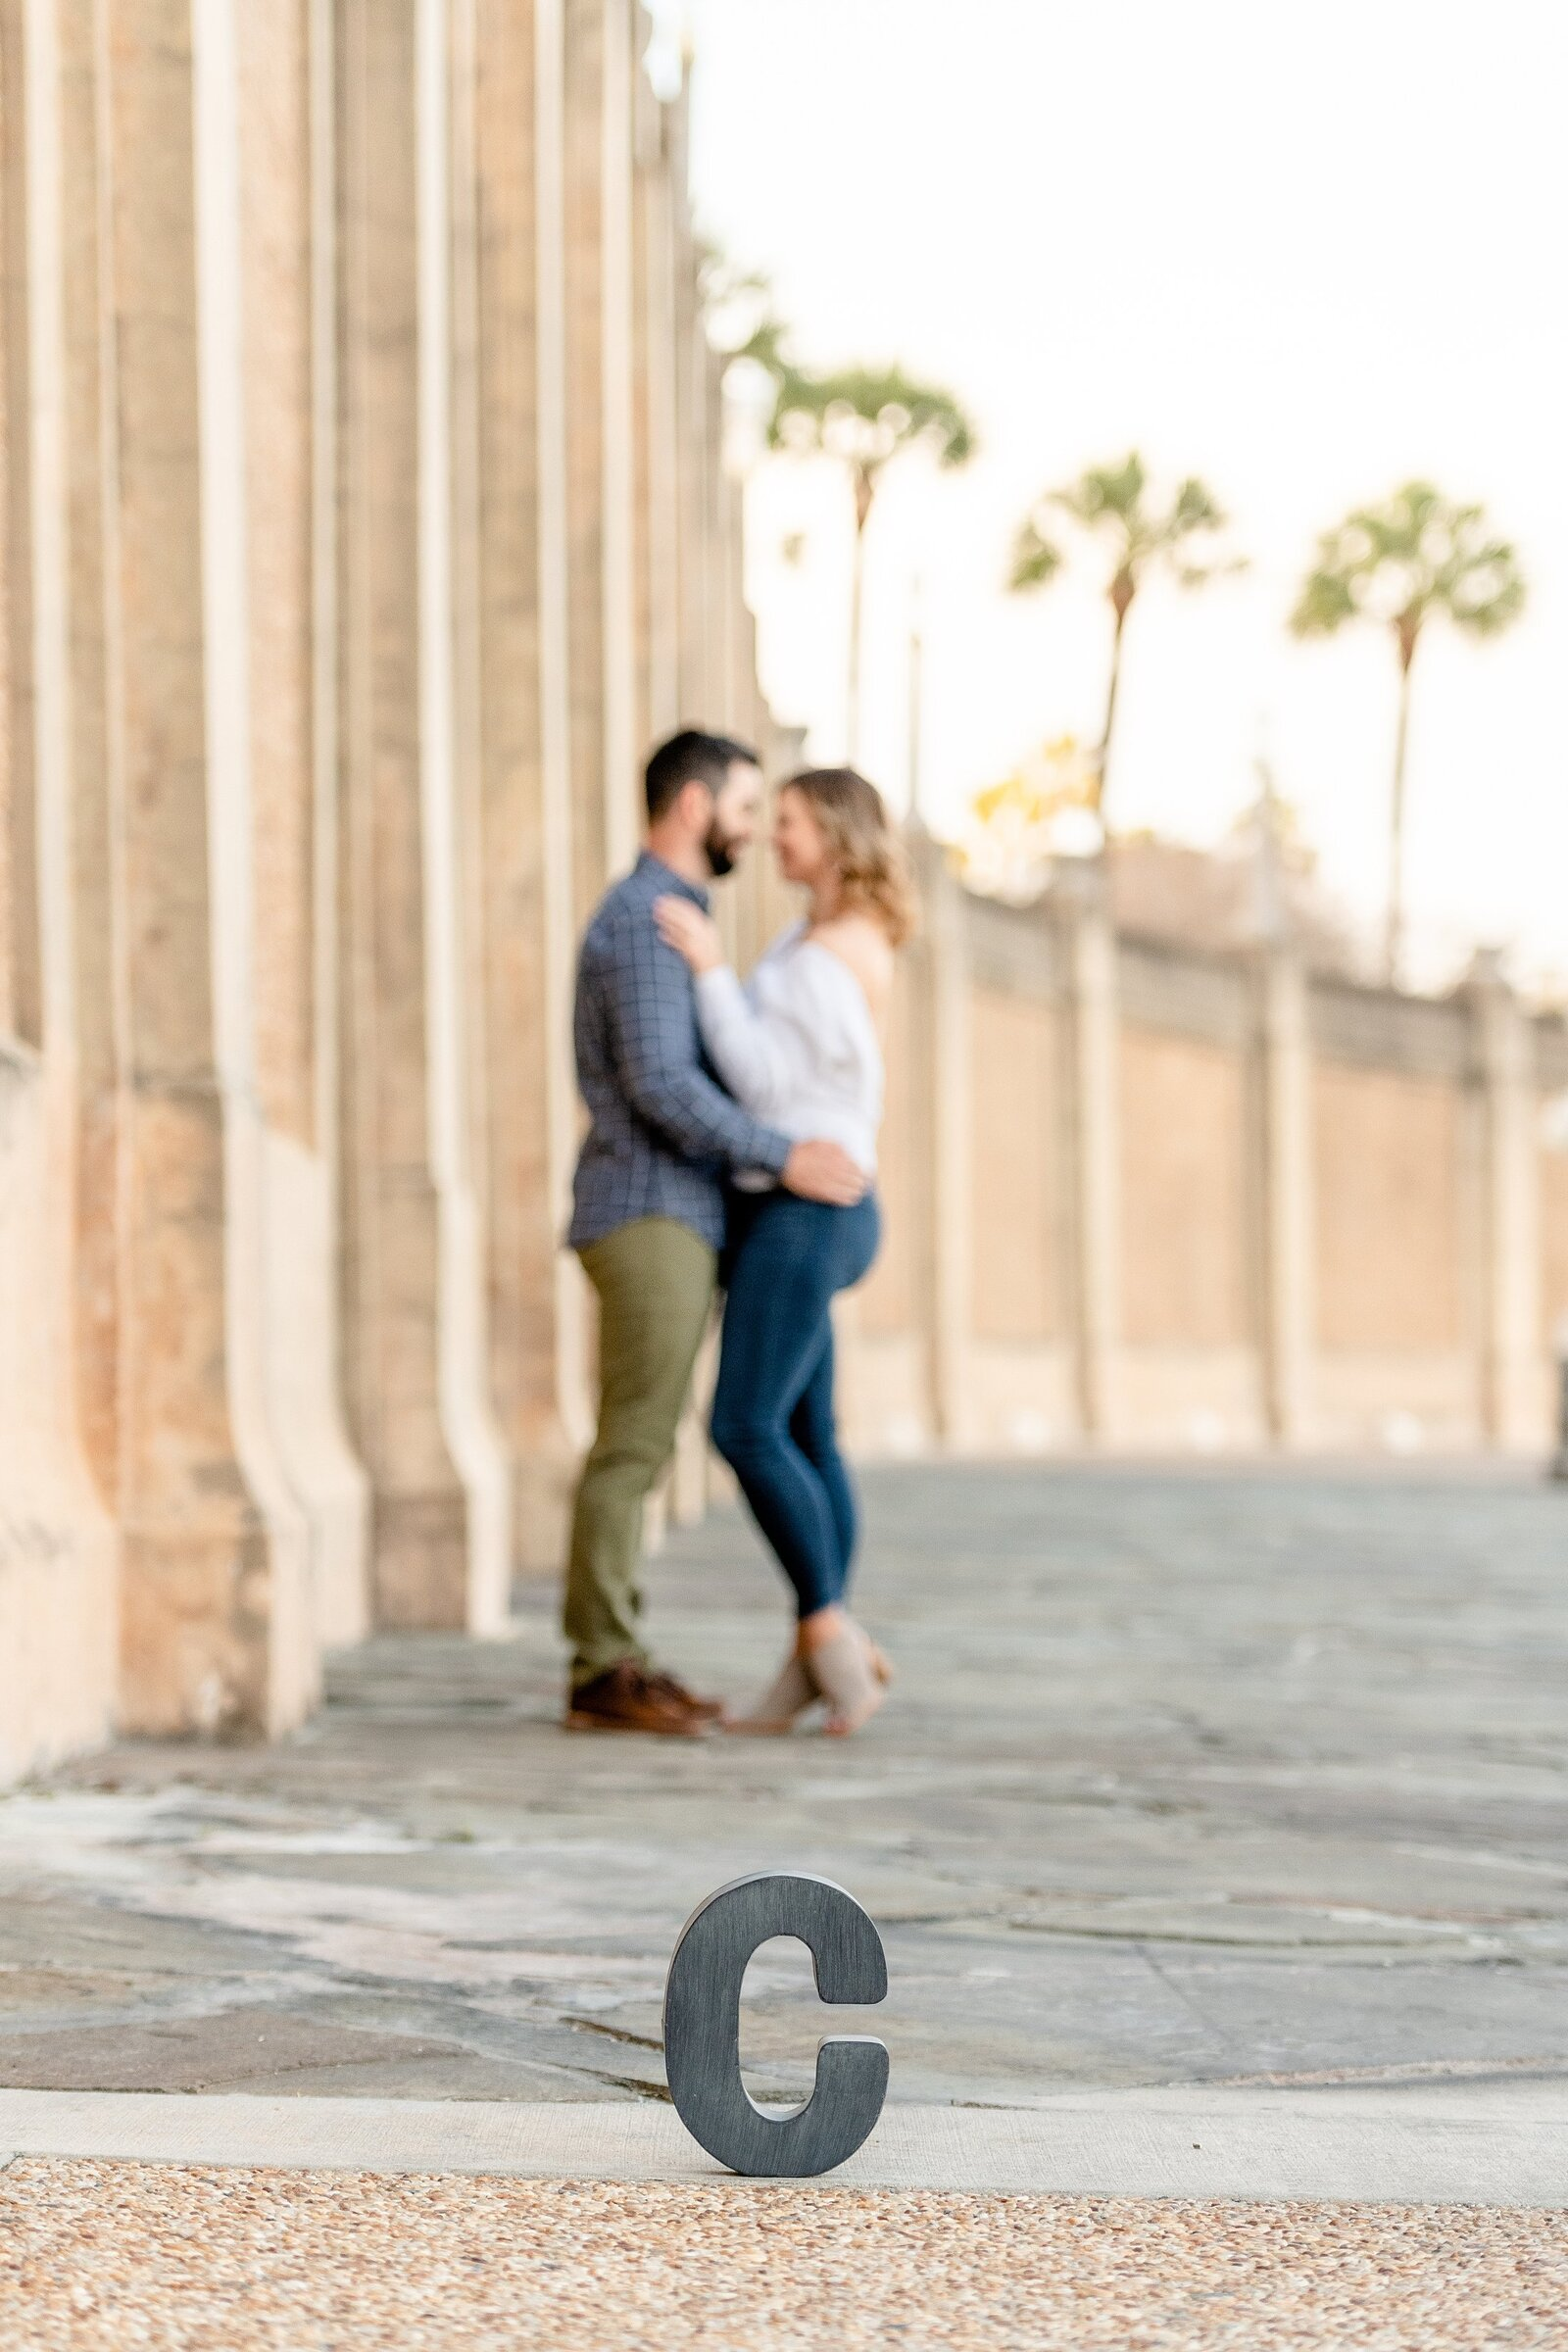 Outdoor engagement photos in Florida